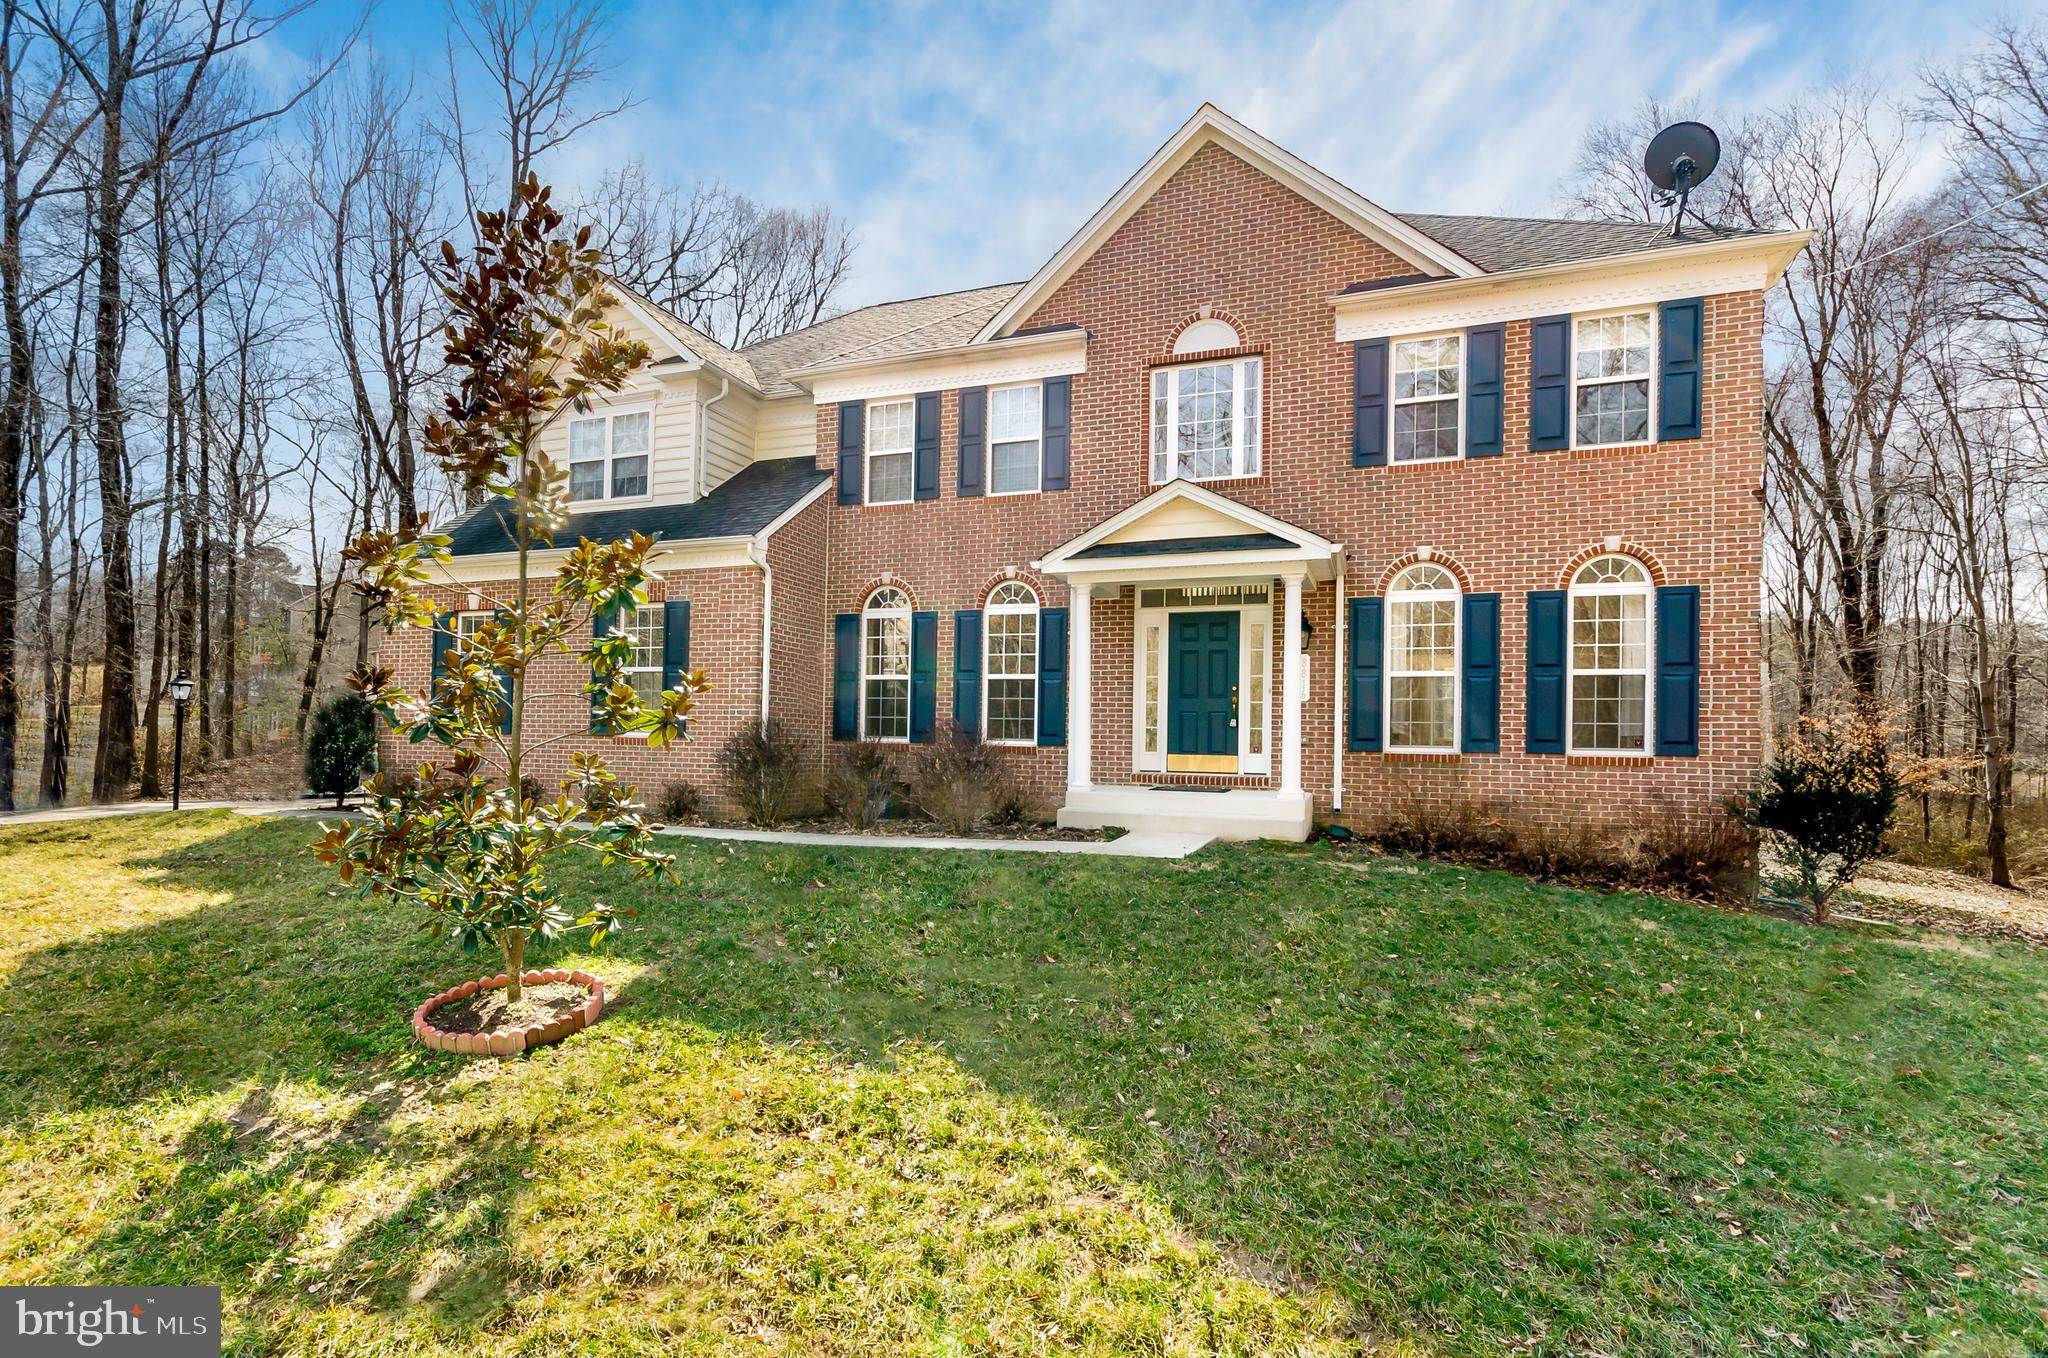 8816 NORMAL SCHOOL ROAD, BOWIE, MD 20715